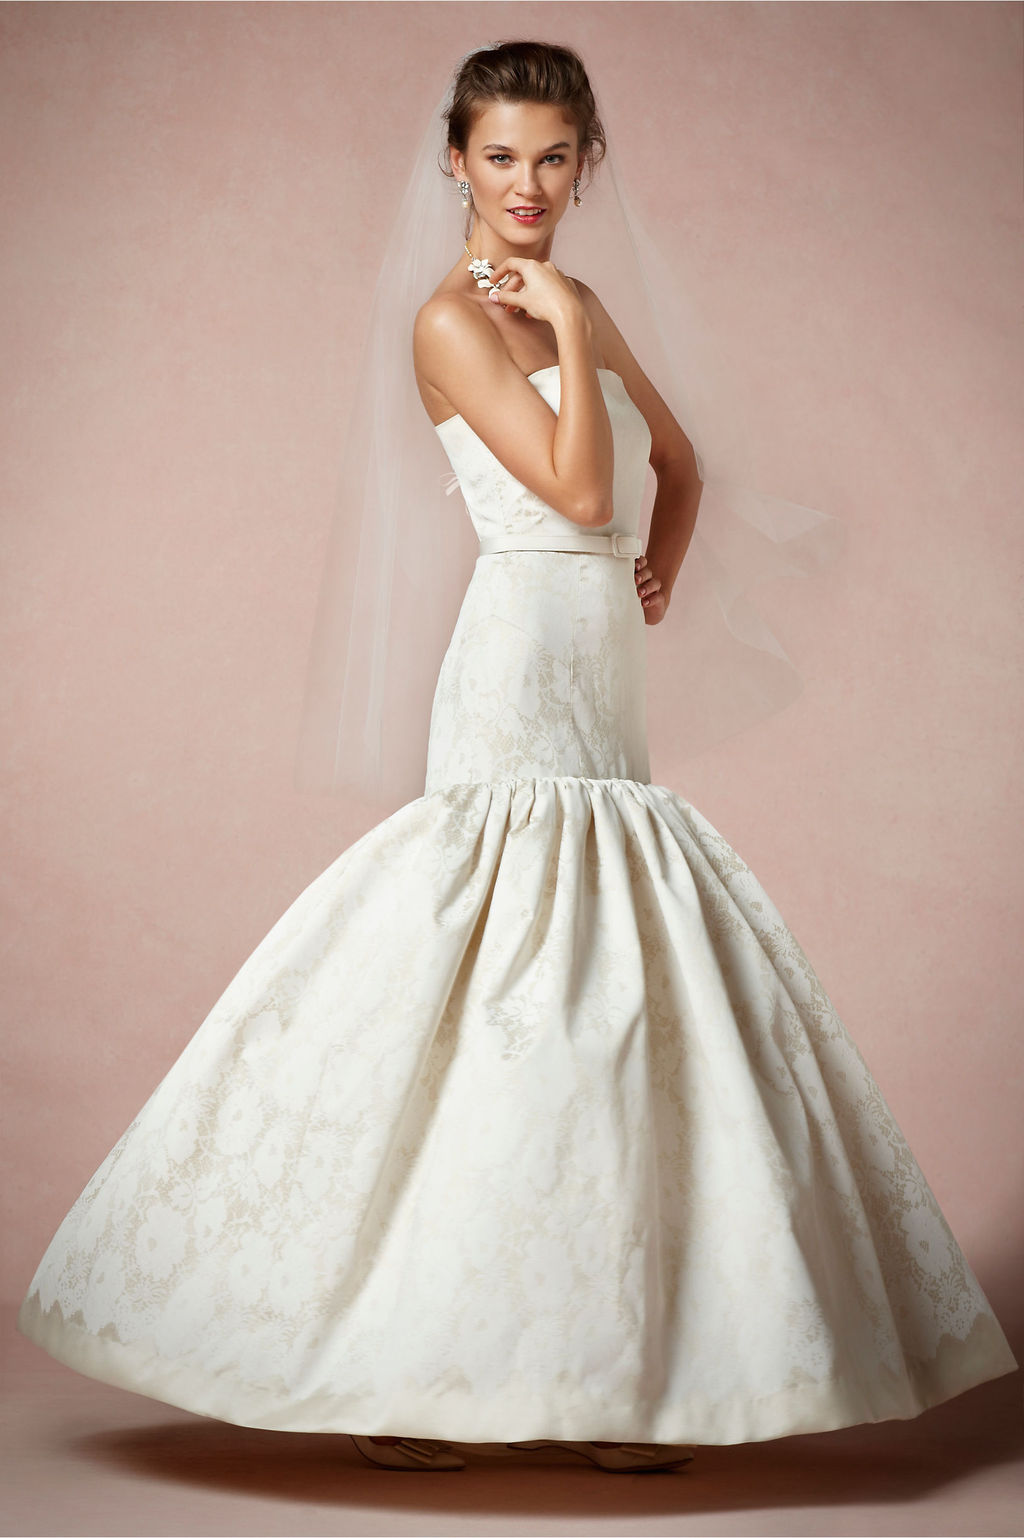 Strapless-mermaid-wedding-dress-vintage-inspired.full